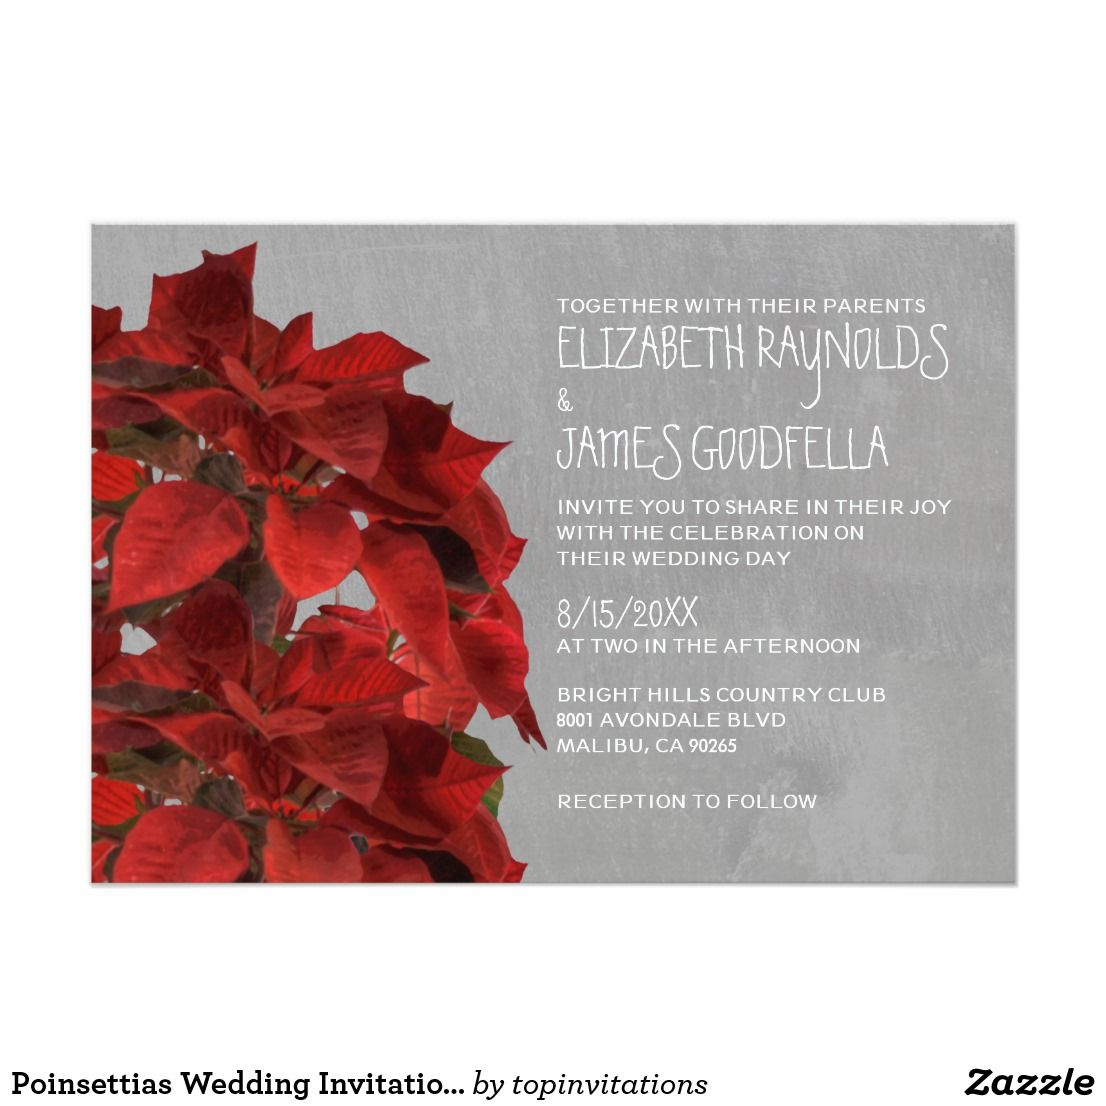 Poinsettias Wedding Invitations | Favors, Wedding and Weddings